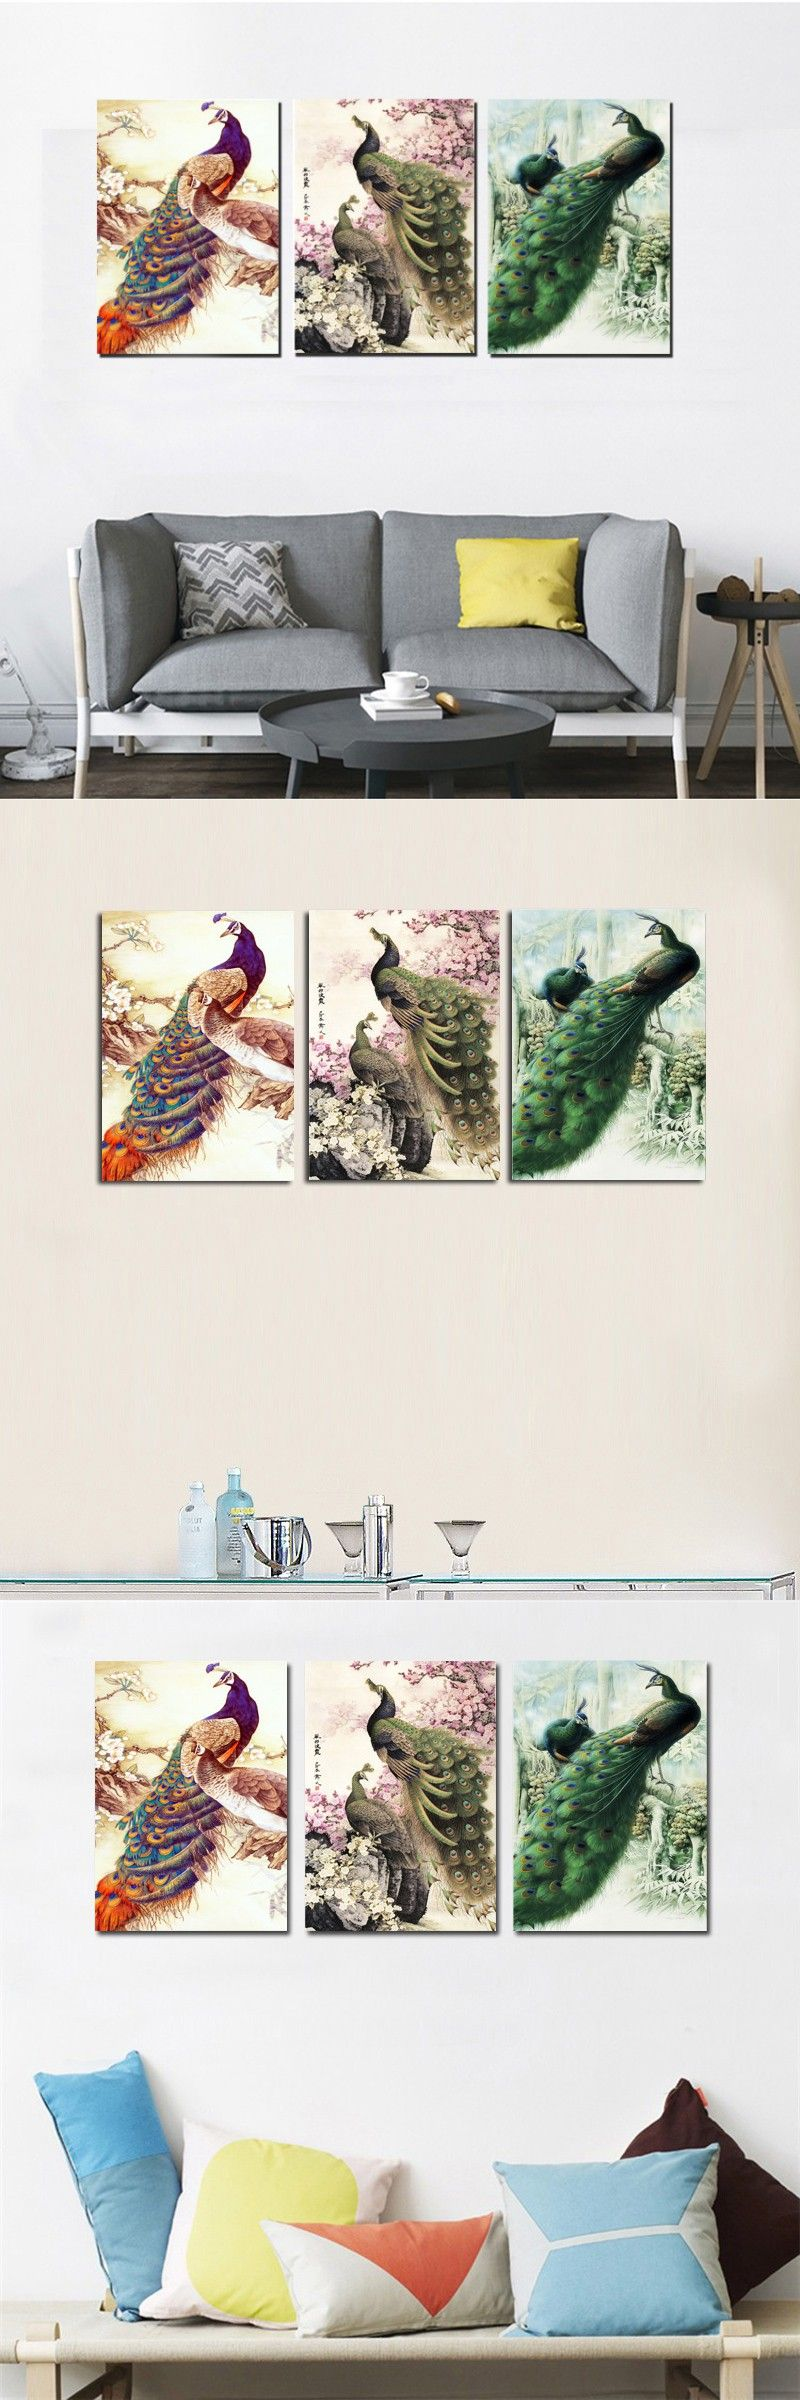 living room art prints%0A Modern Home Decor Painting Canvas Art Print Peacock Painting Chinese Animal  Large Wall Art Livingroom Decor   Panel Set No frame